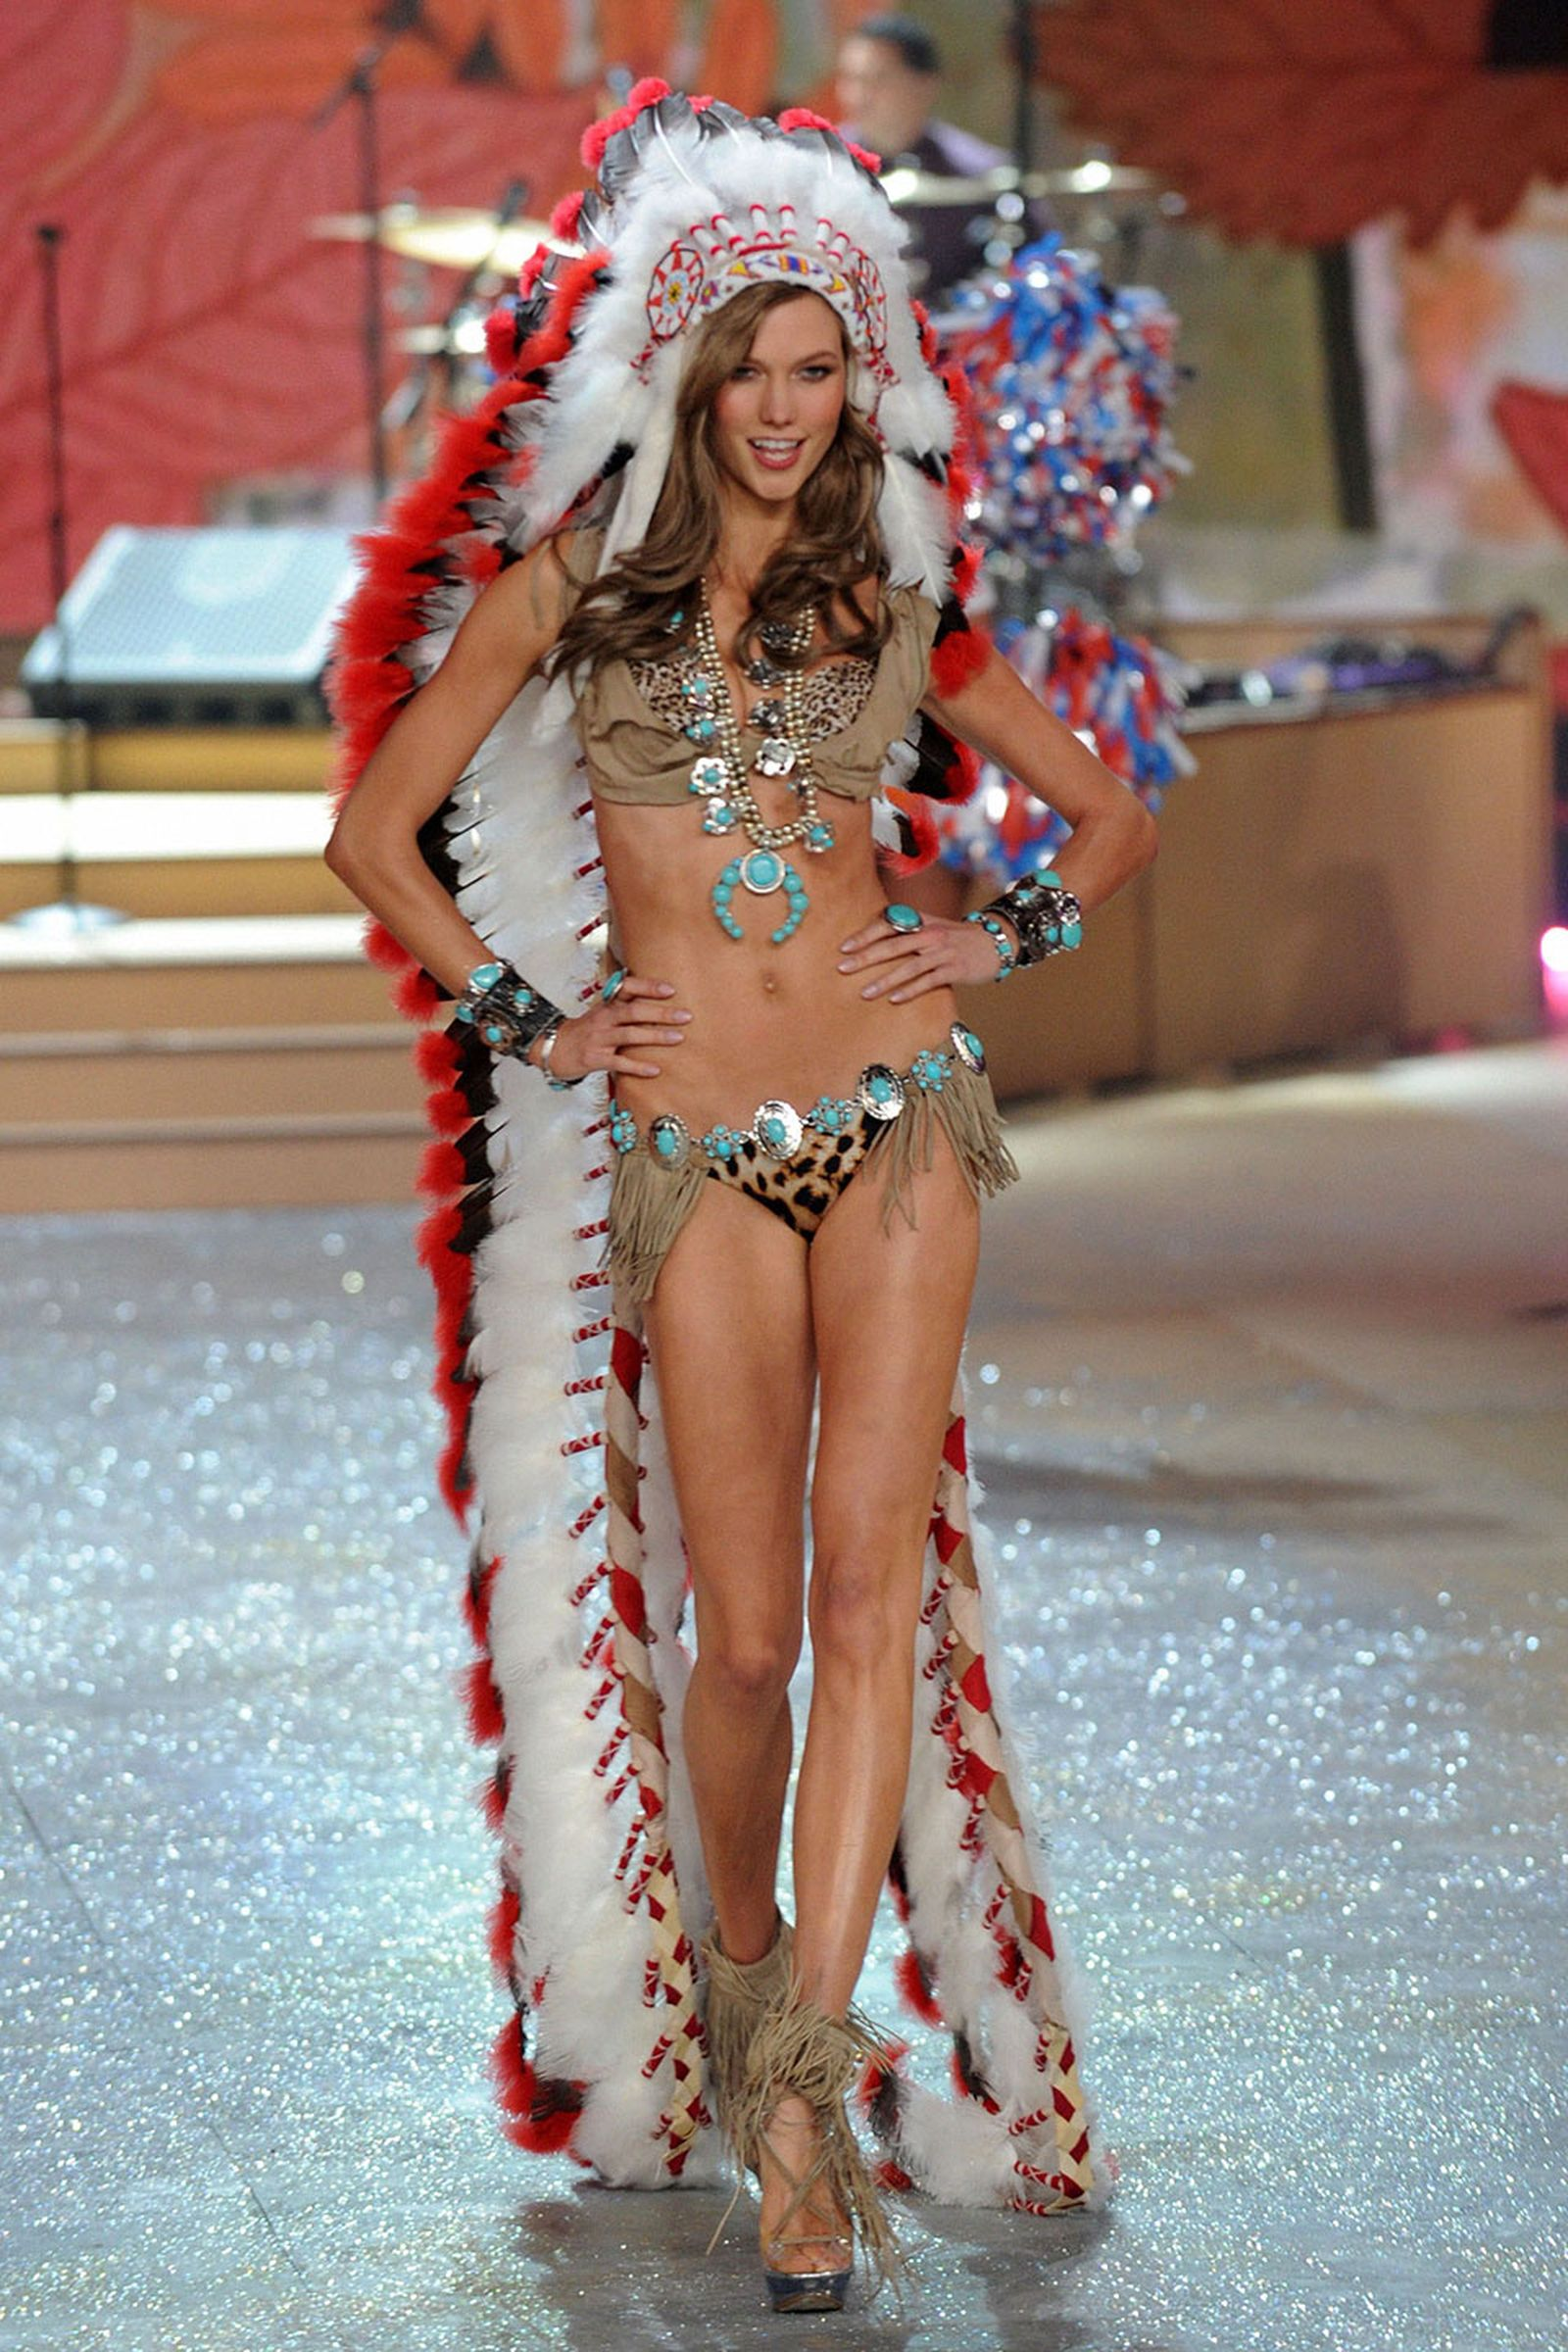 native american cultural appropriation Pharrell Williams coachella gwen stefani